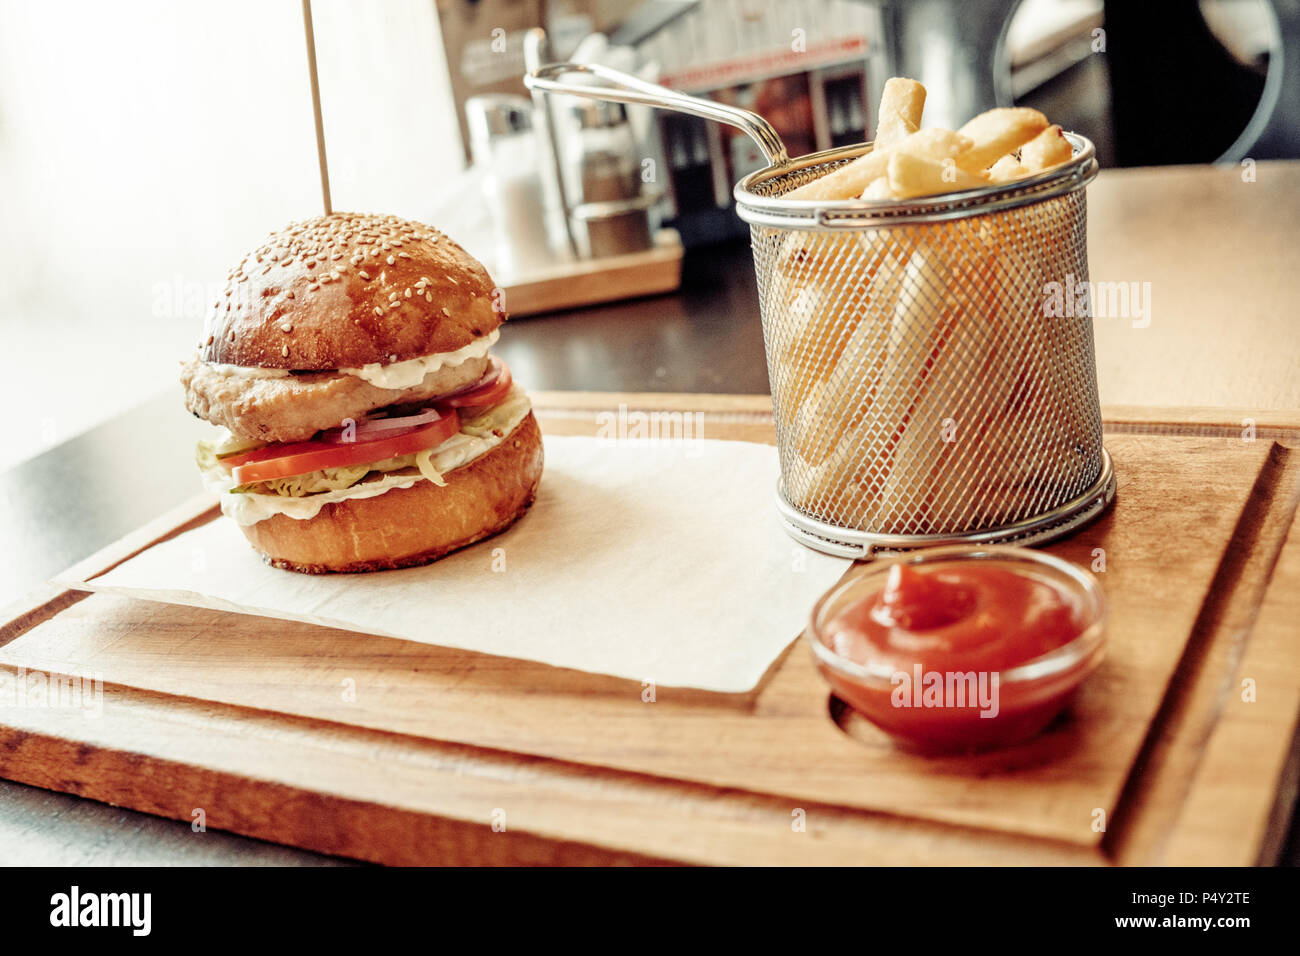 Angle View Of Craft burger , tomato souse and french fries on wooden plate - Stock Image